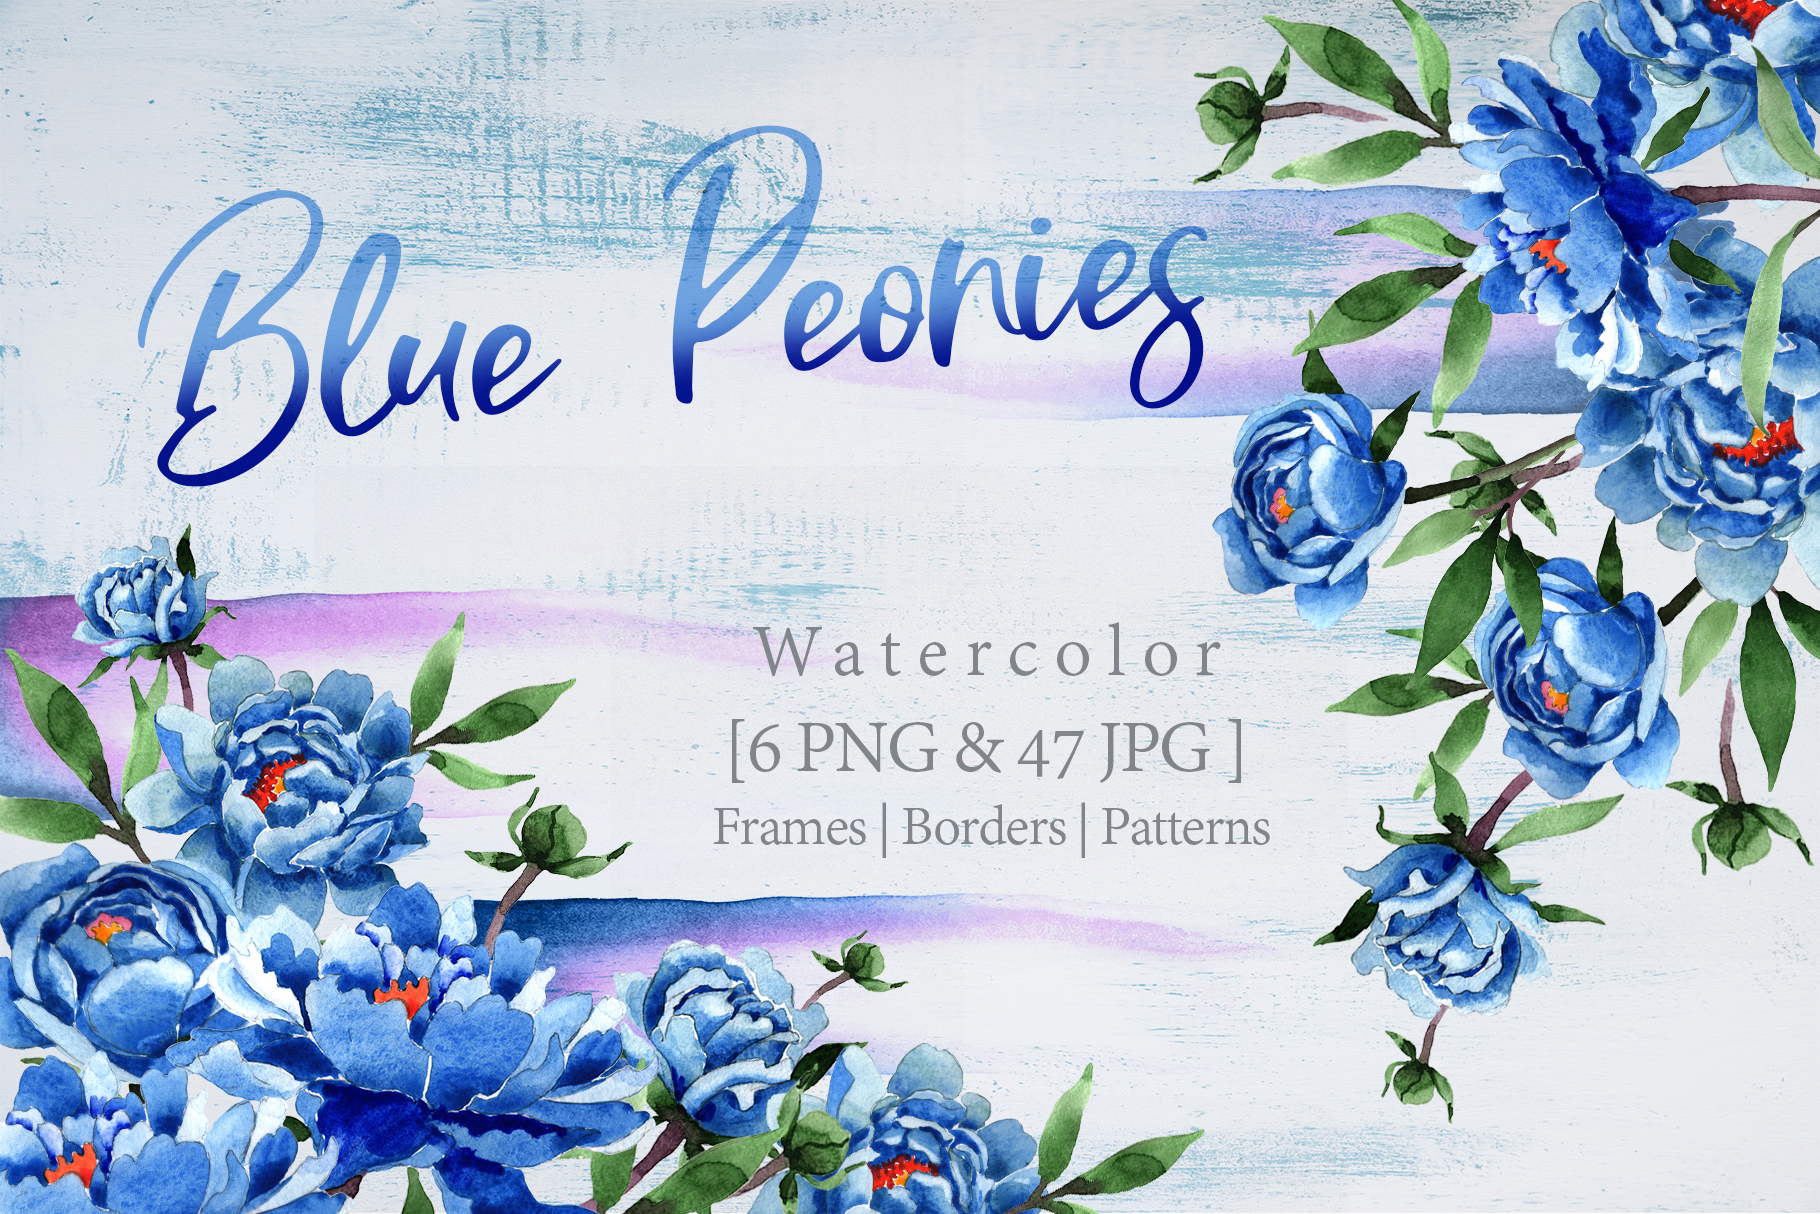 Cool Blue Peonies Watercolor Flower Set Graphic By Mystocks Creative Fabrica